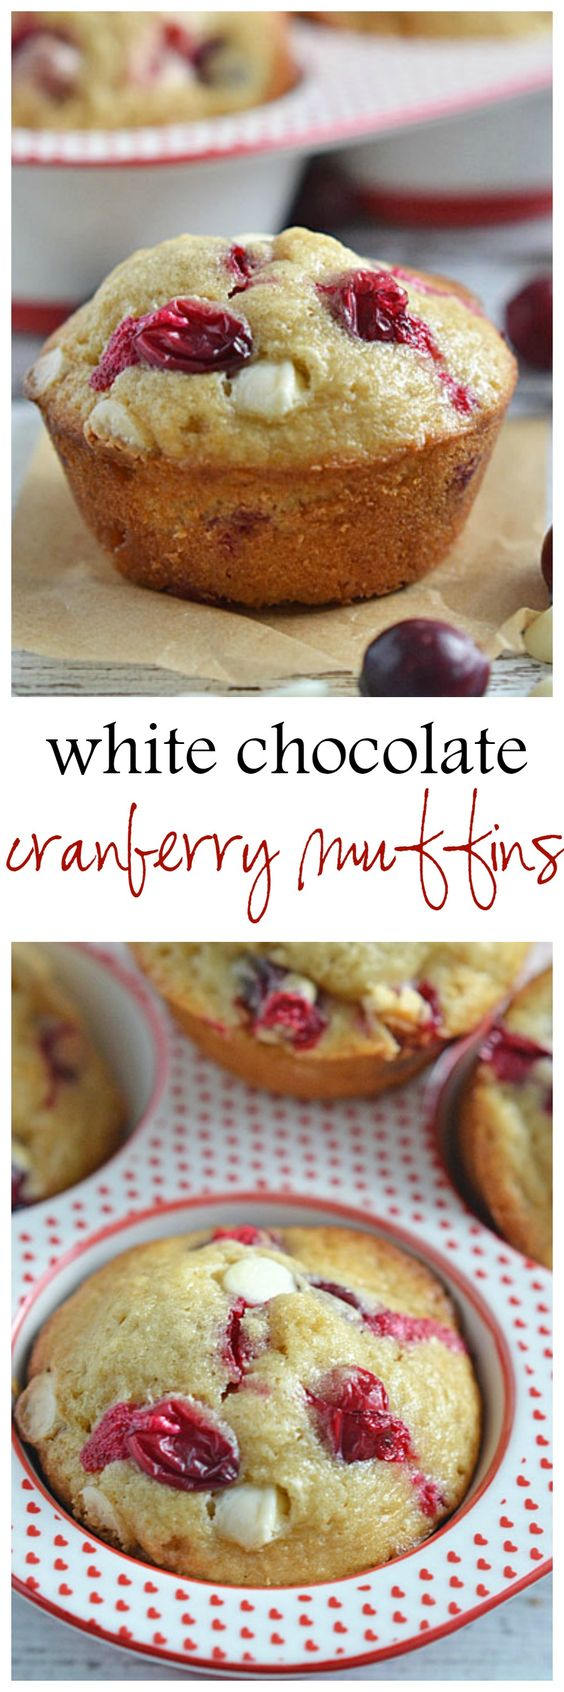 White Chocolate Cranberry Muffins | Recipe | Cranberry Muffins, White ...